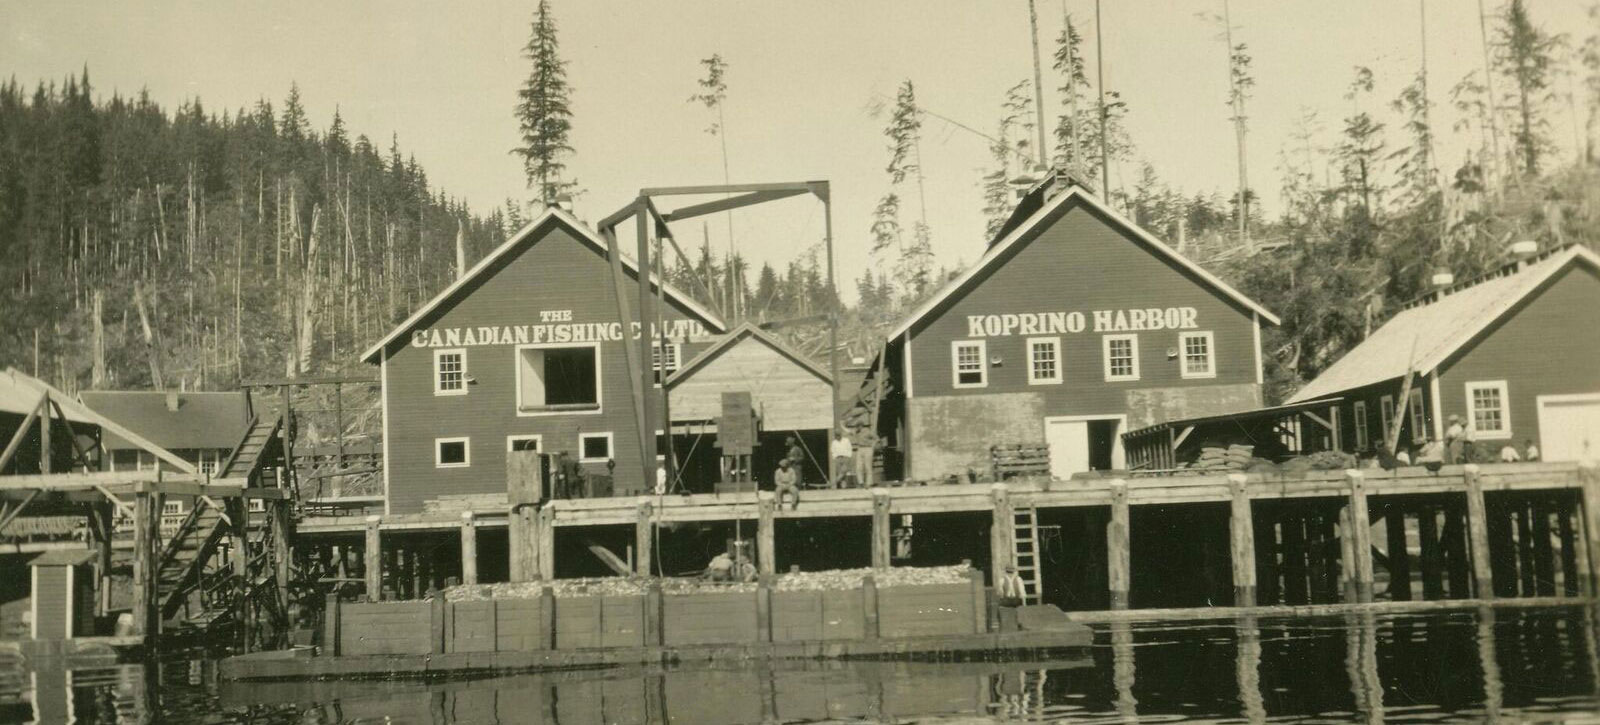 "Men resting on the wharf and working near the fish bins at the Koprino Harbour Cannery. Signs on the buildings read ""The Canadian Fishing Co. Ltd."" and ""Koprino Harbor"""